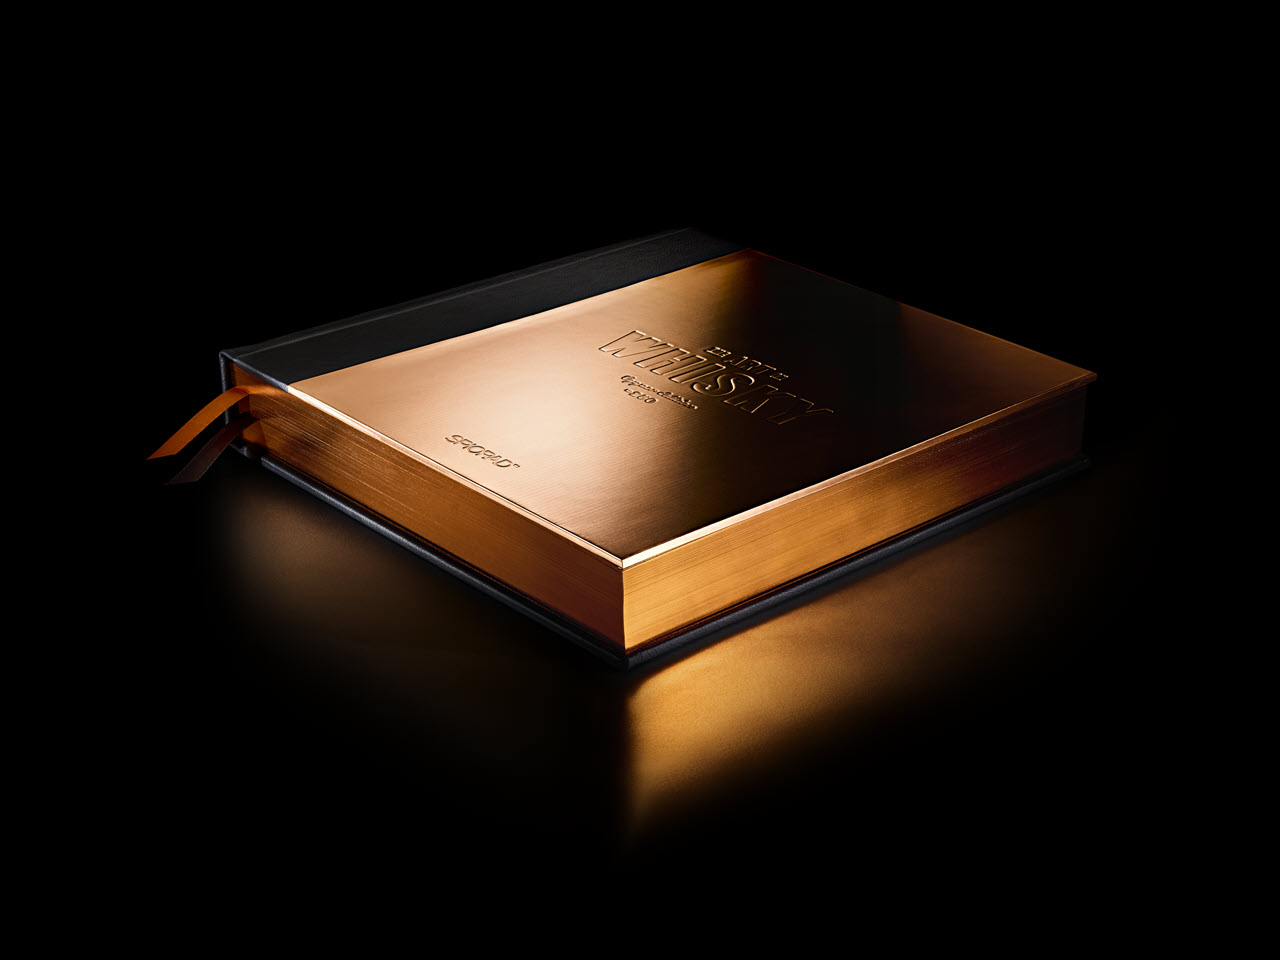 TheArt in Whisky - The Copper Edition